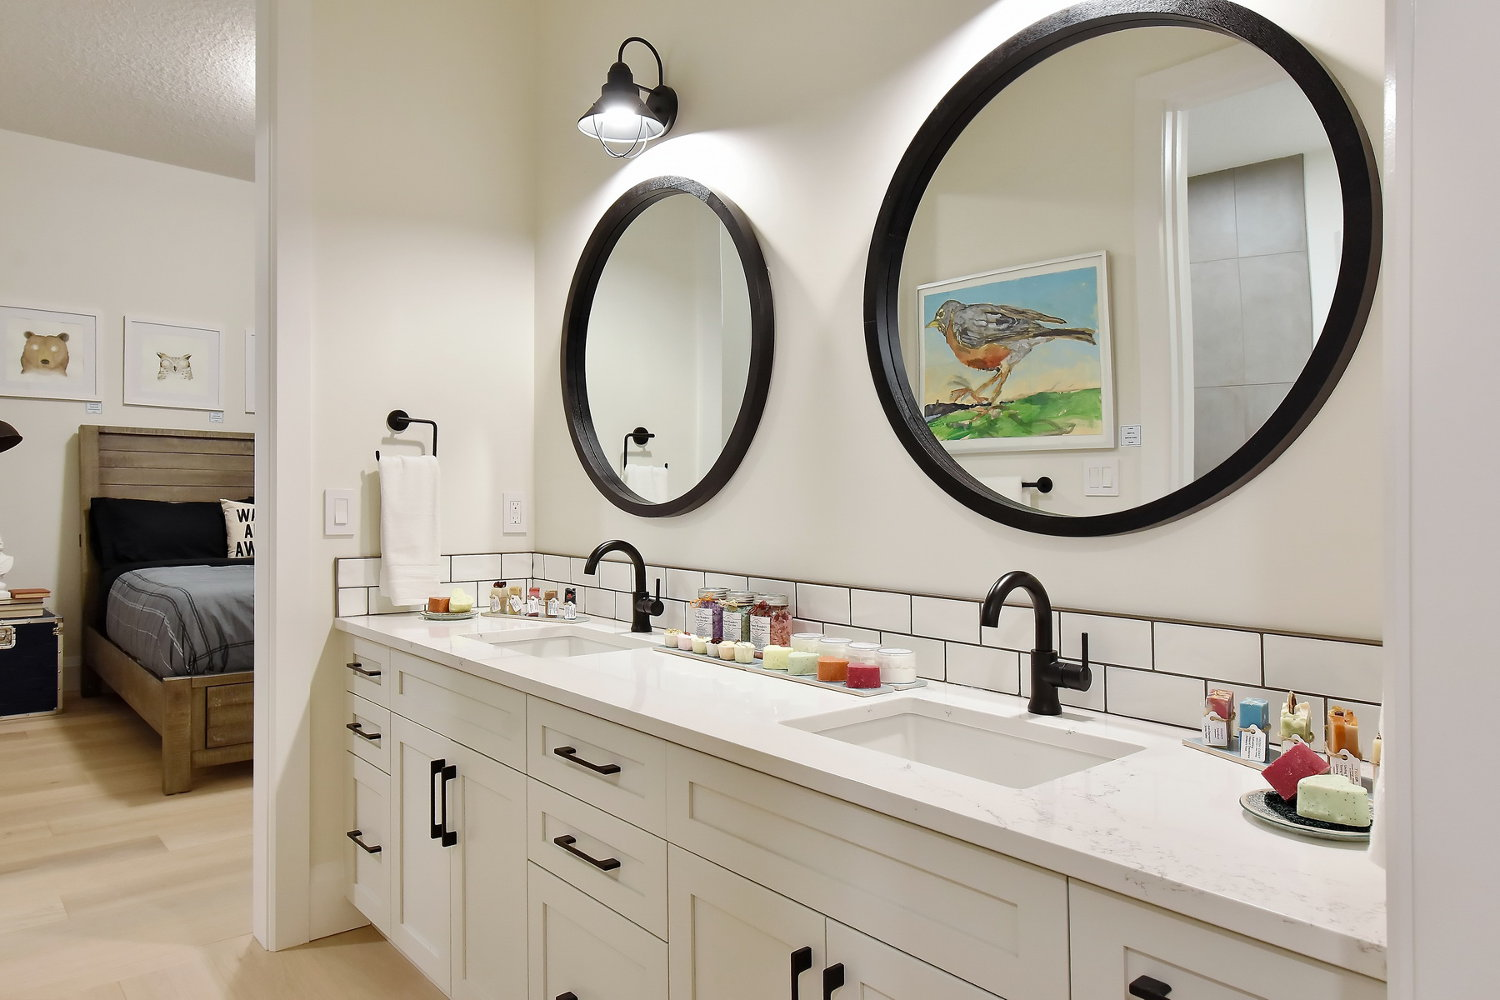 Jack & Jill Bathroom with Matte Black Faucets